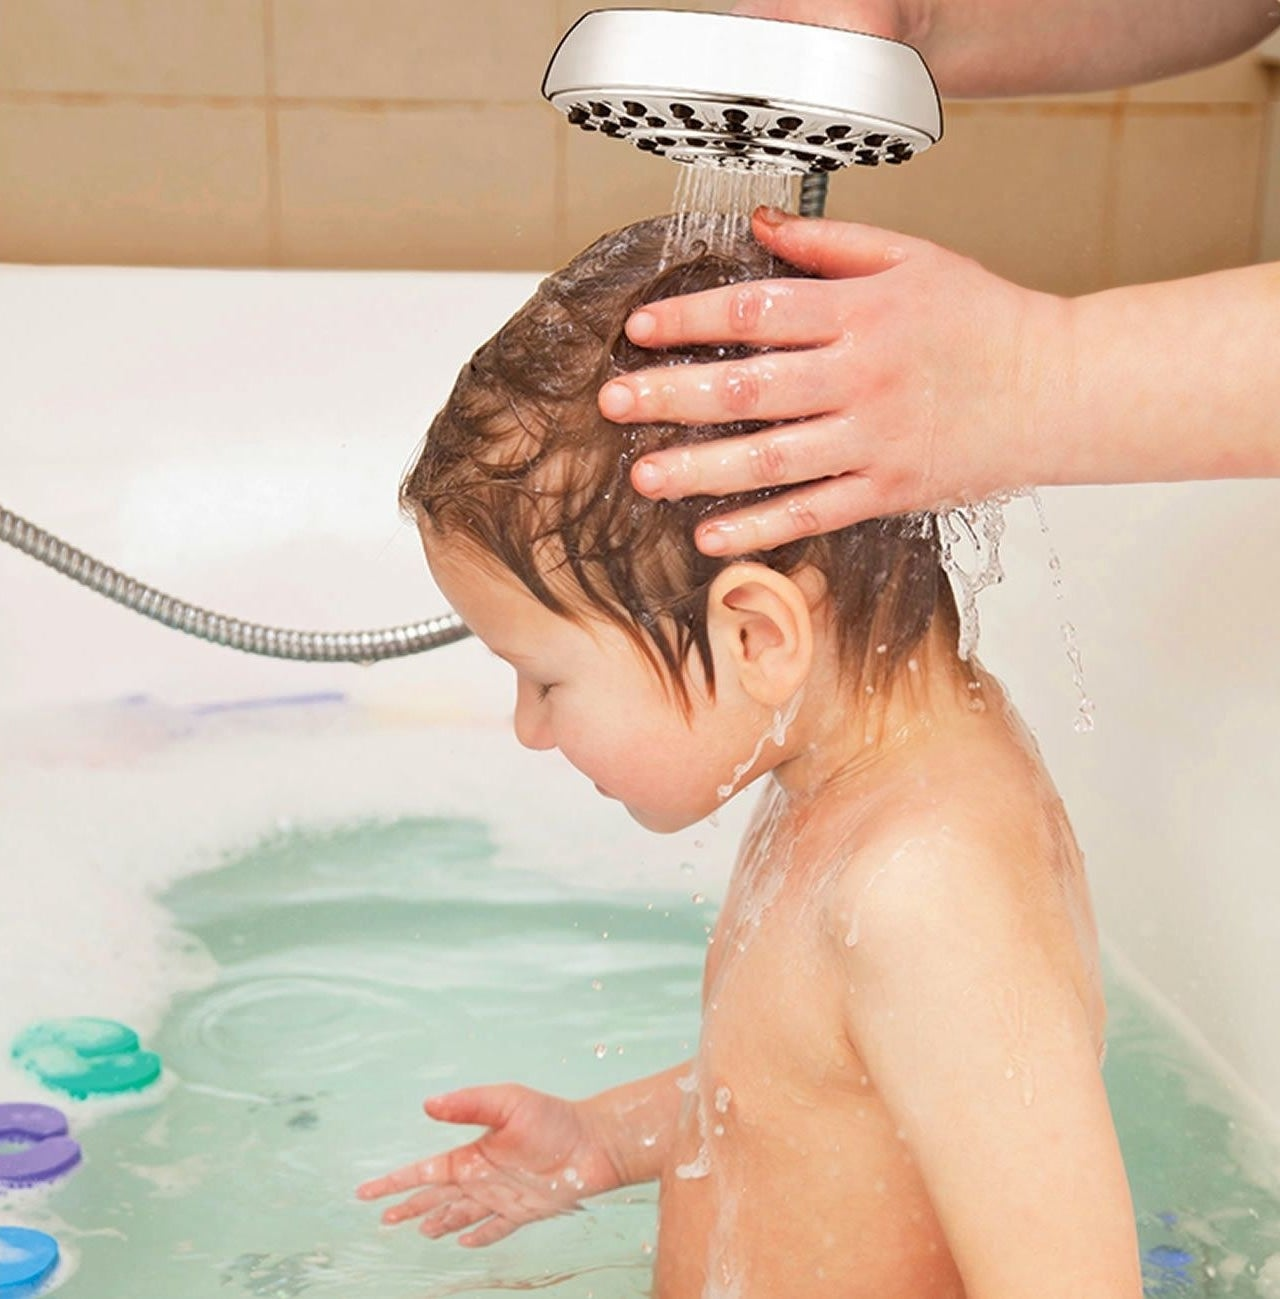 Child being bathed with shower head